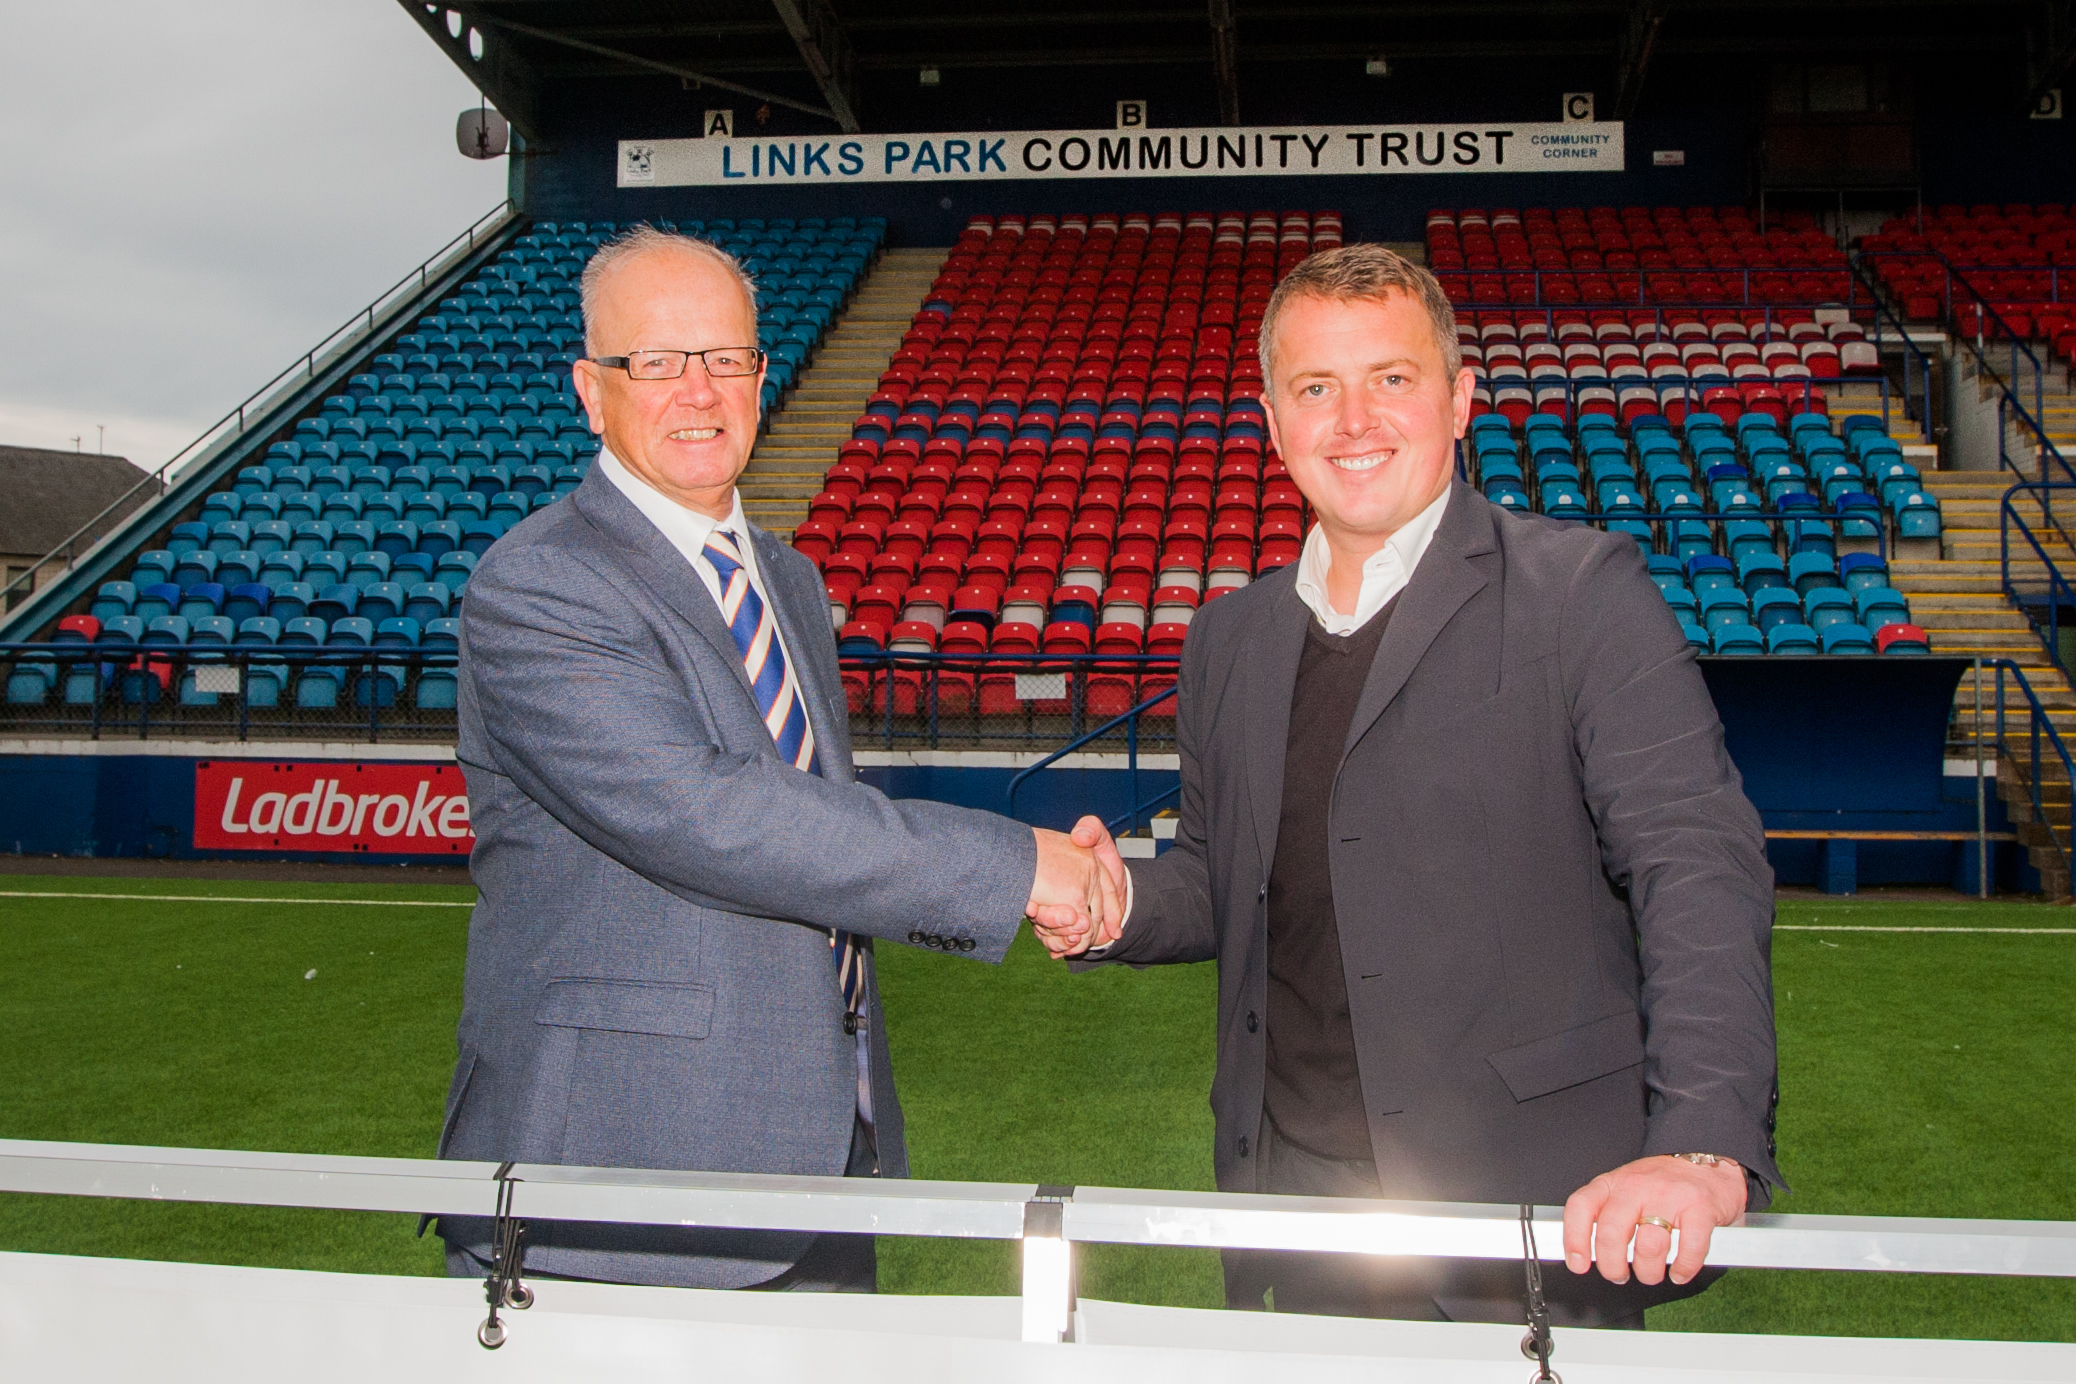 Picture shows club chairman John Crawford (left) and Peter Davidson (LPCT Chief Executive, right).